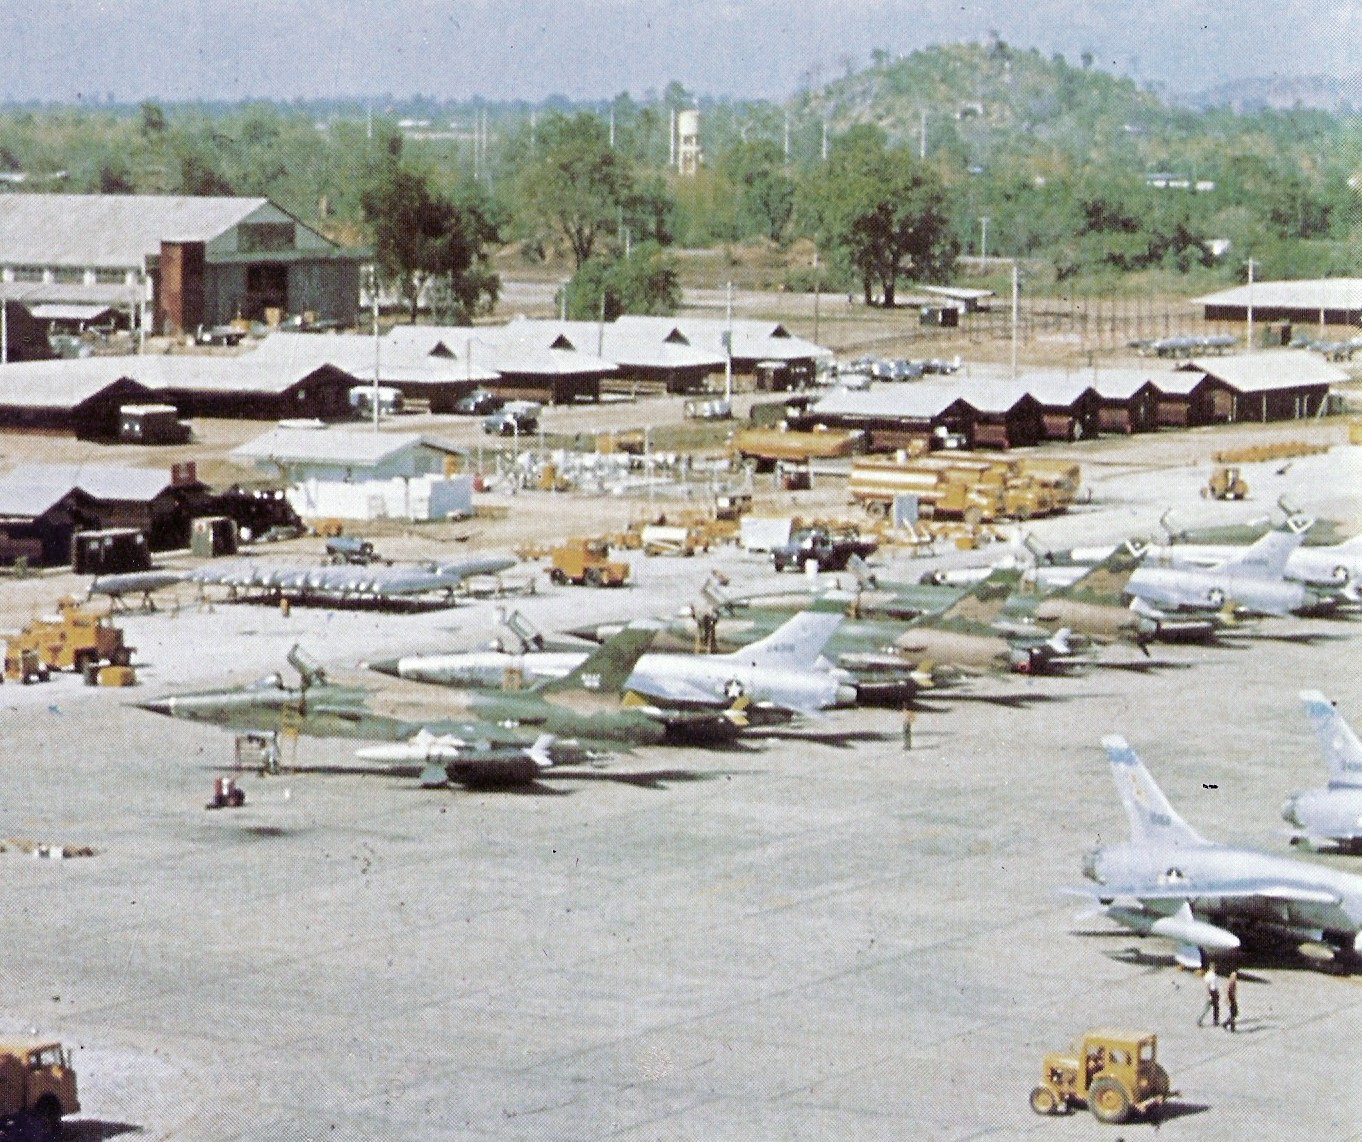 Usaf In Thailand http://commons.wikimedia.org/wiki/File:F-105Ds_4TFW_Takhli_Dec1965.jpg